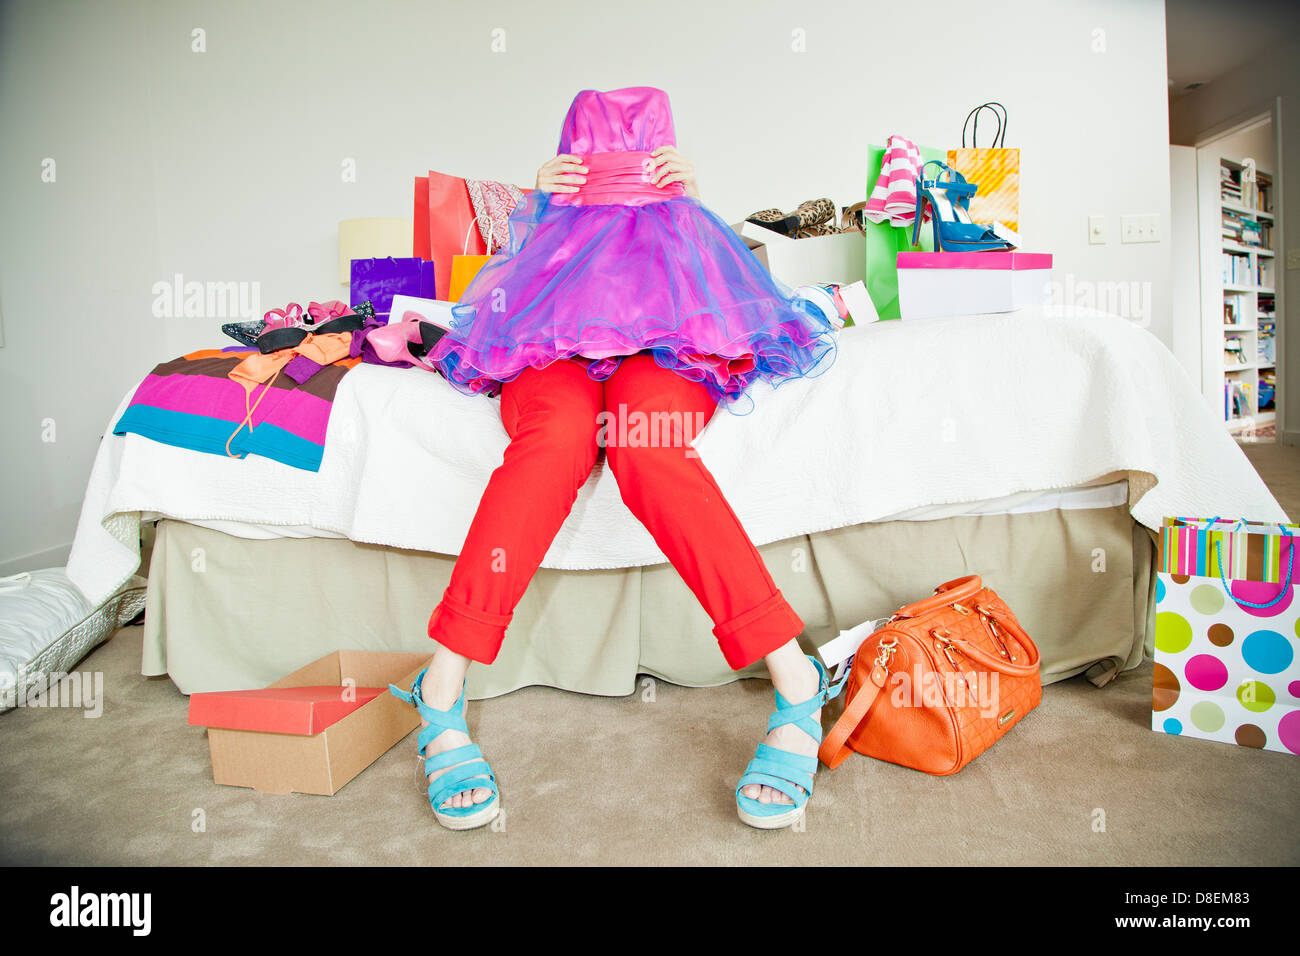 Woman on bed surrounded by shopping bags Stock Photo